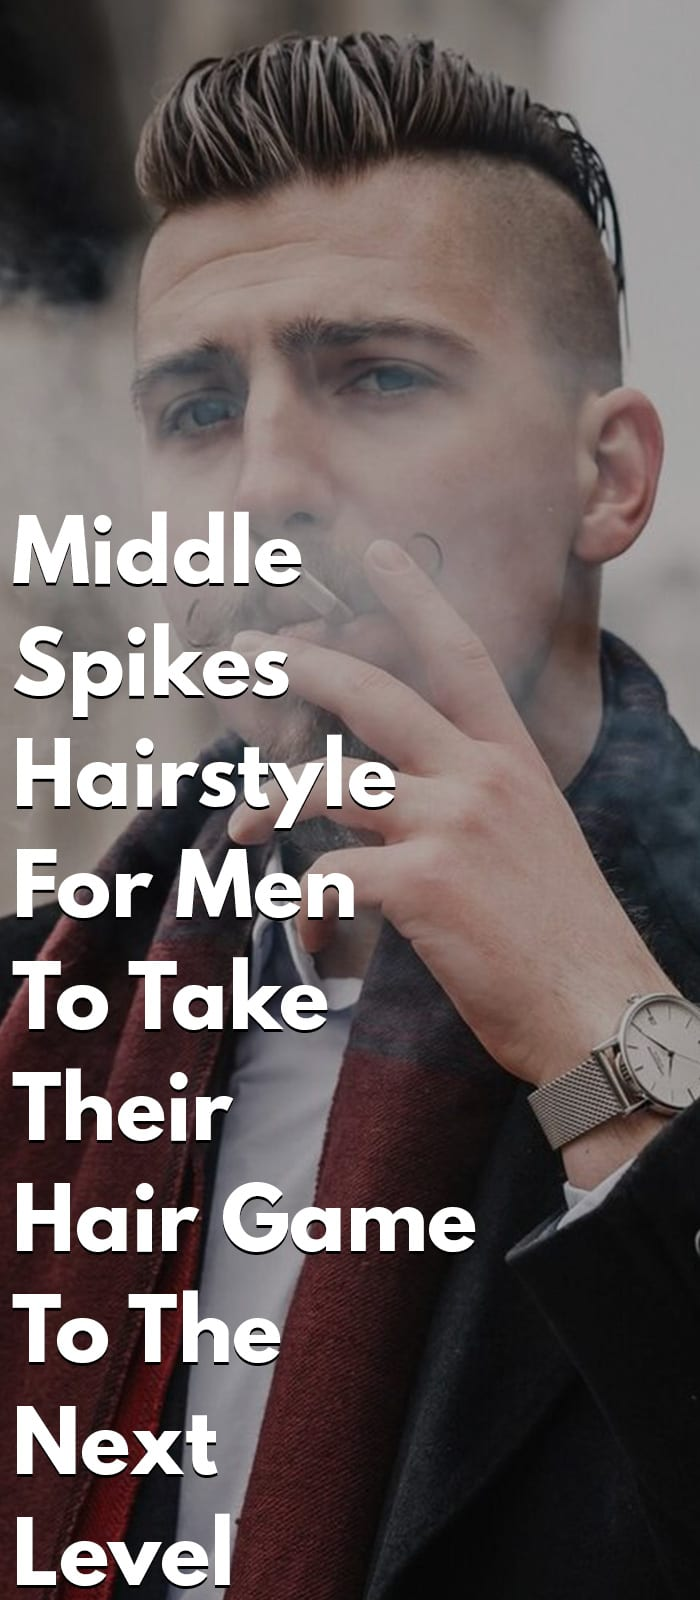 Middle Spikes Hairstyle For Men